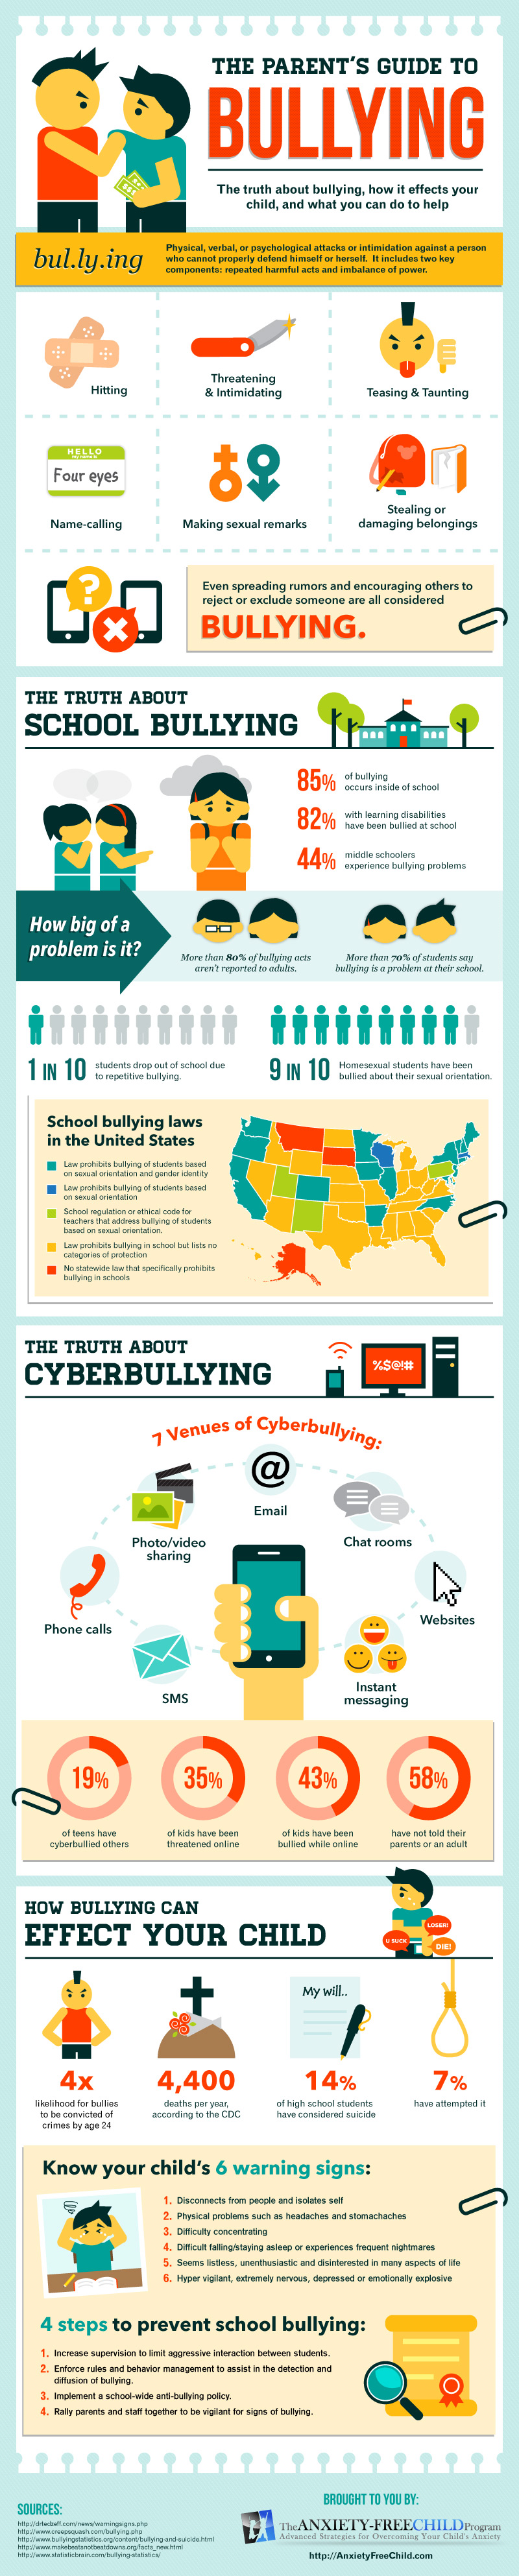 The Parent's Guide to Bullying and Child Anxiety [INFOGRAPHIC]